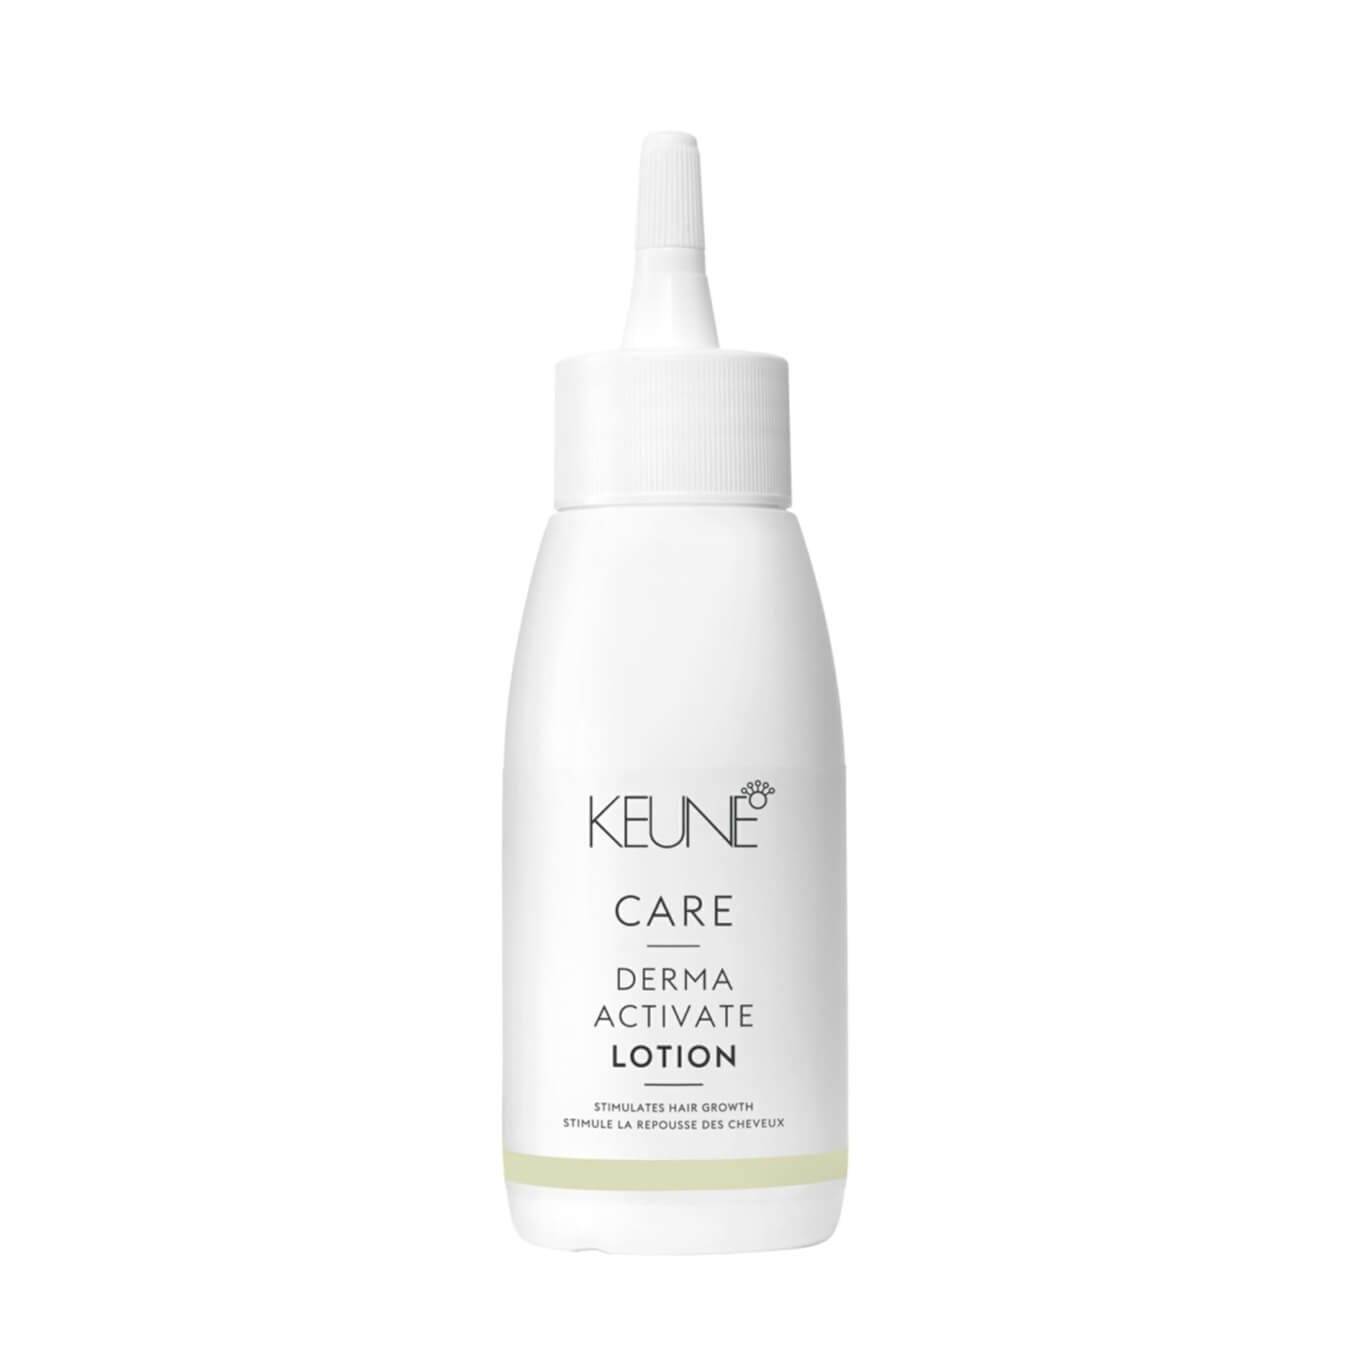 Kauf Keune Care Derma Activate Lotion 75ml